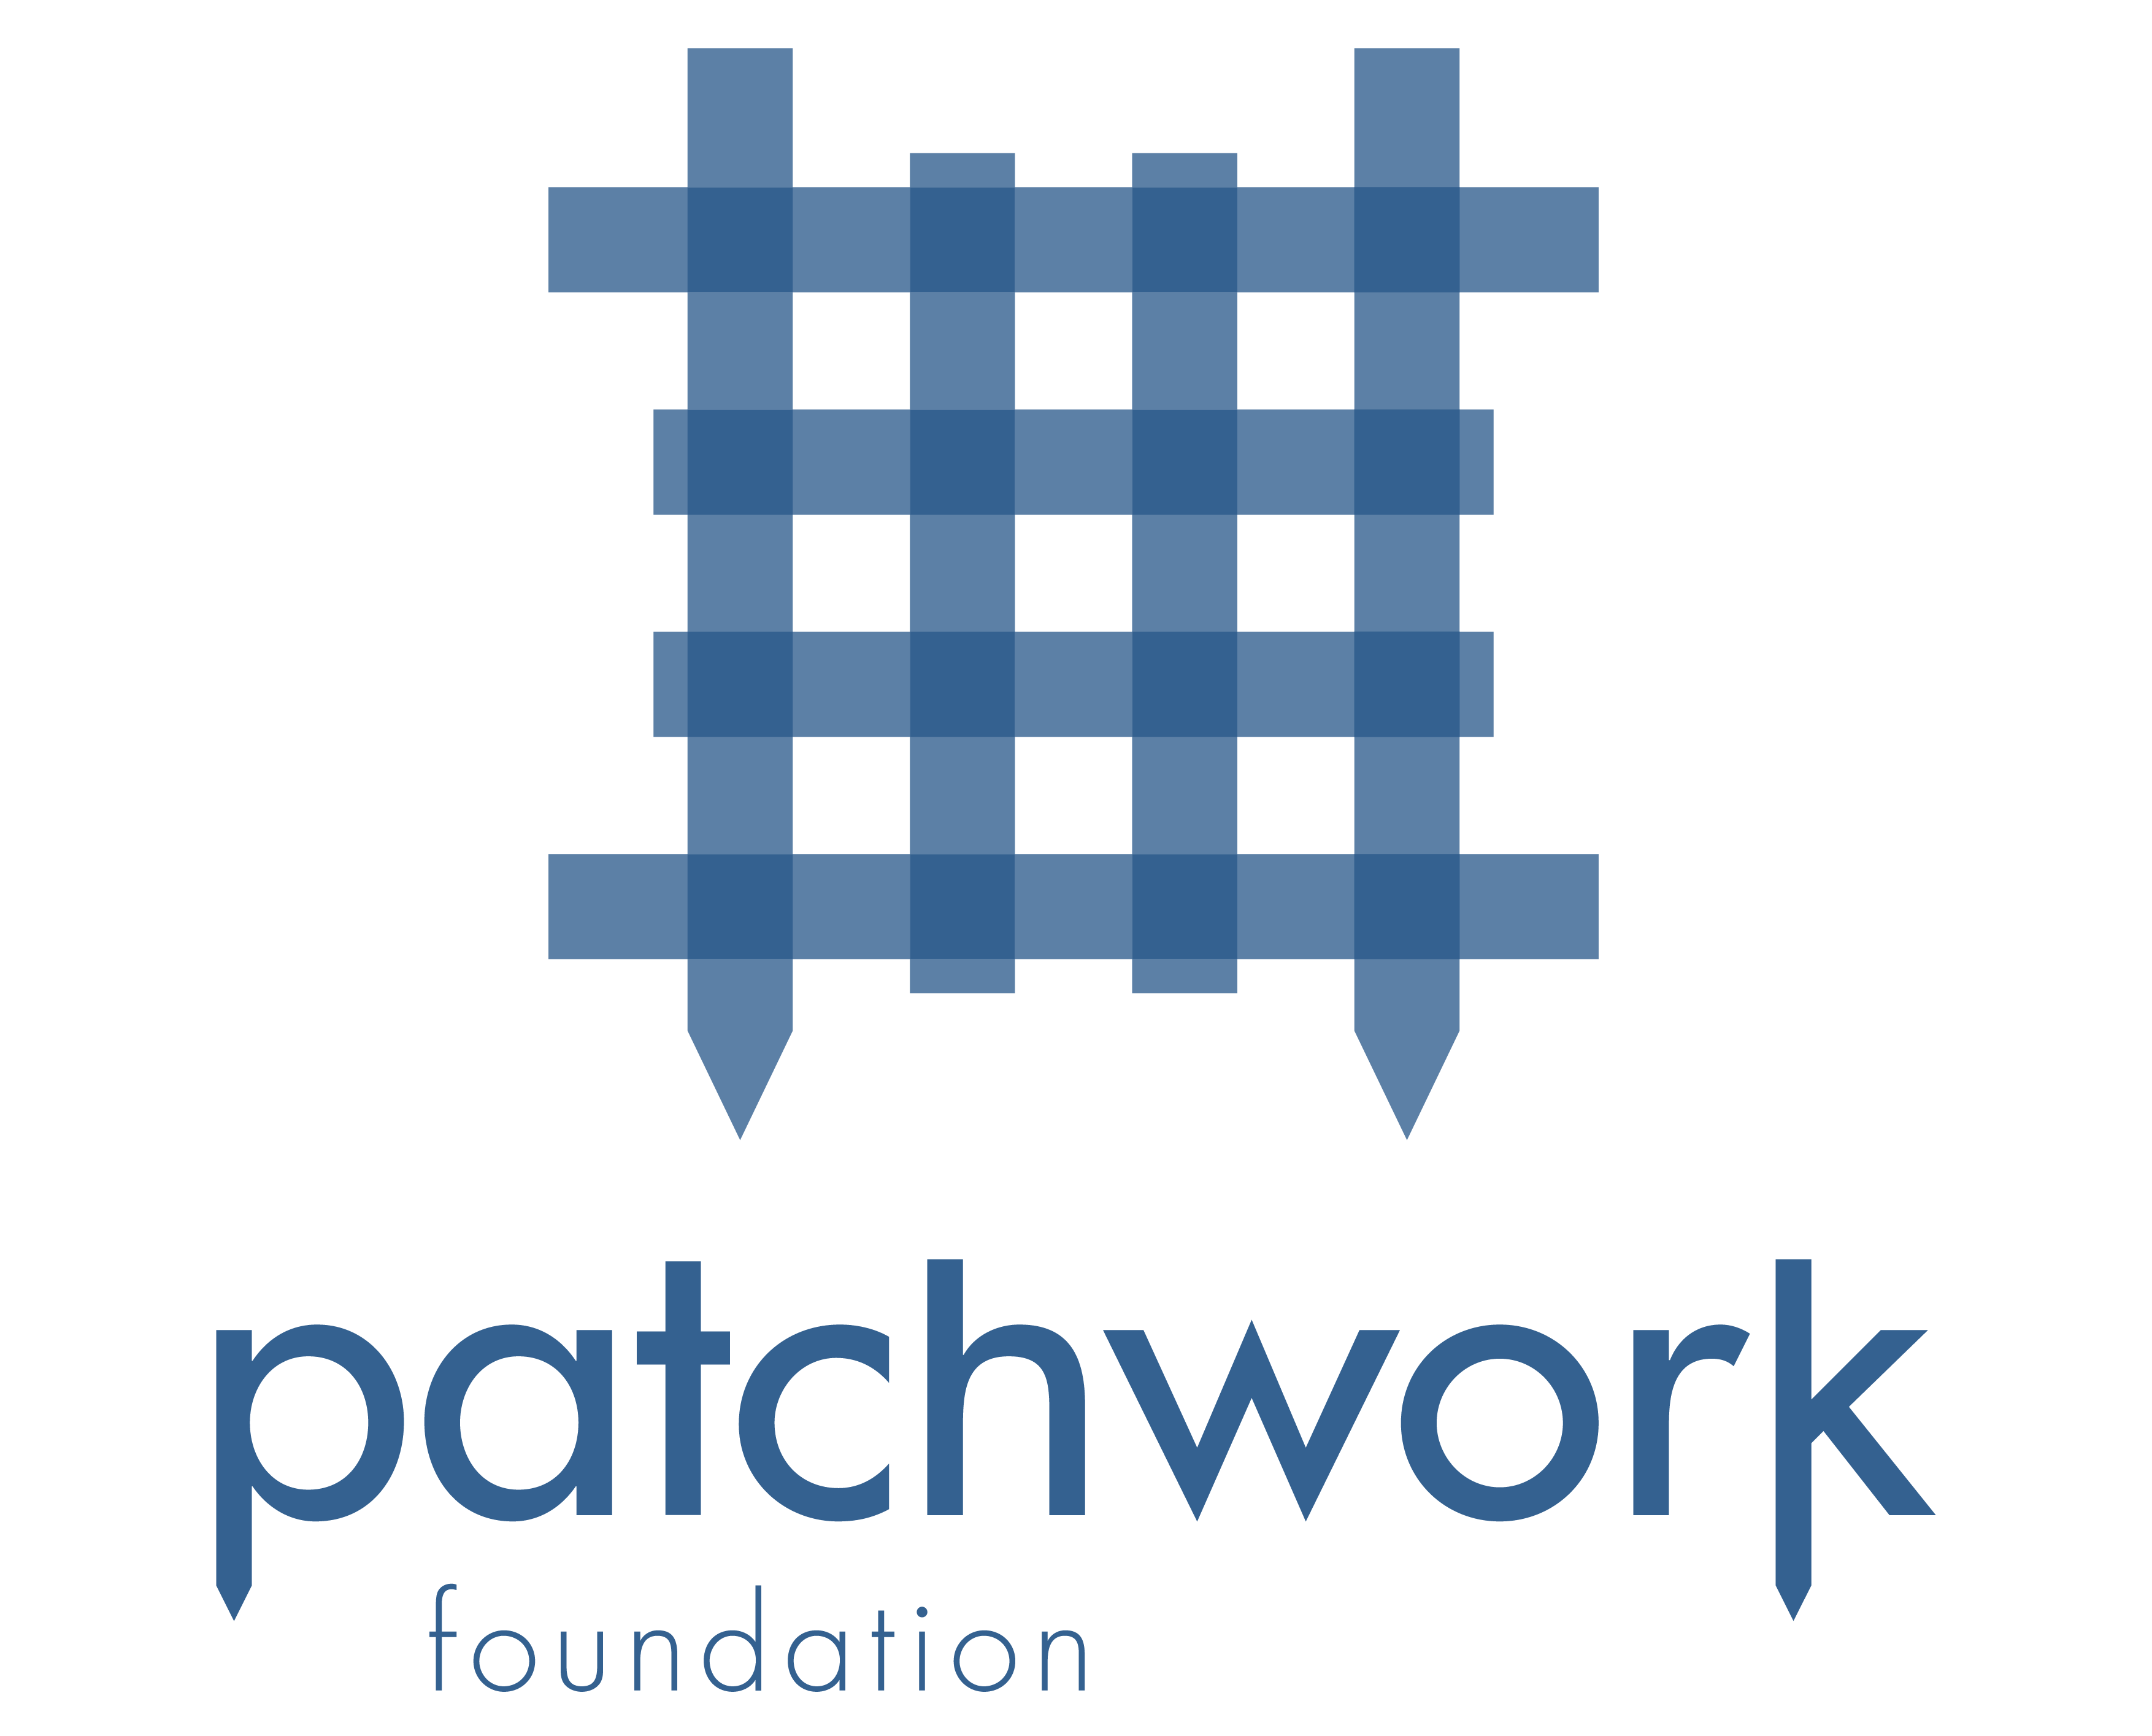 Patchwork_logo blue_stacked